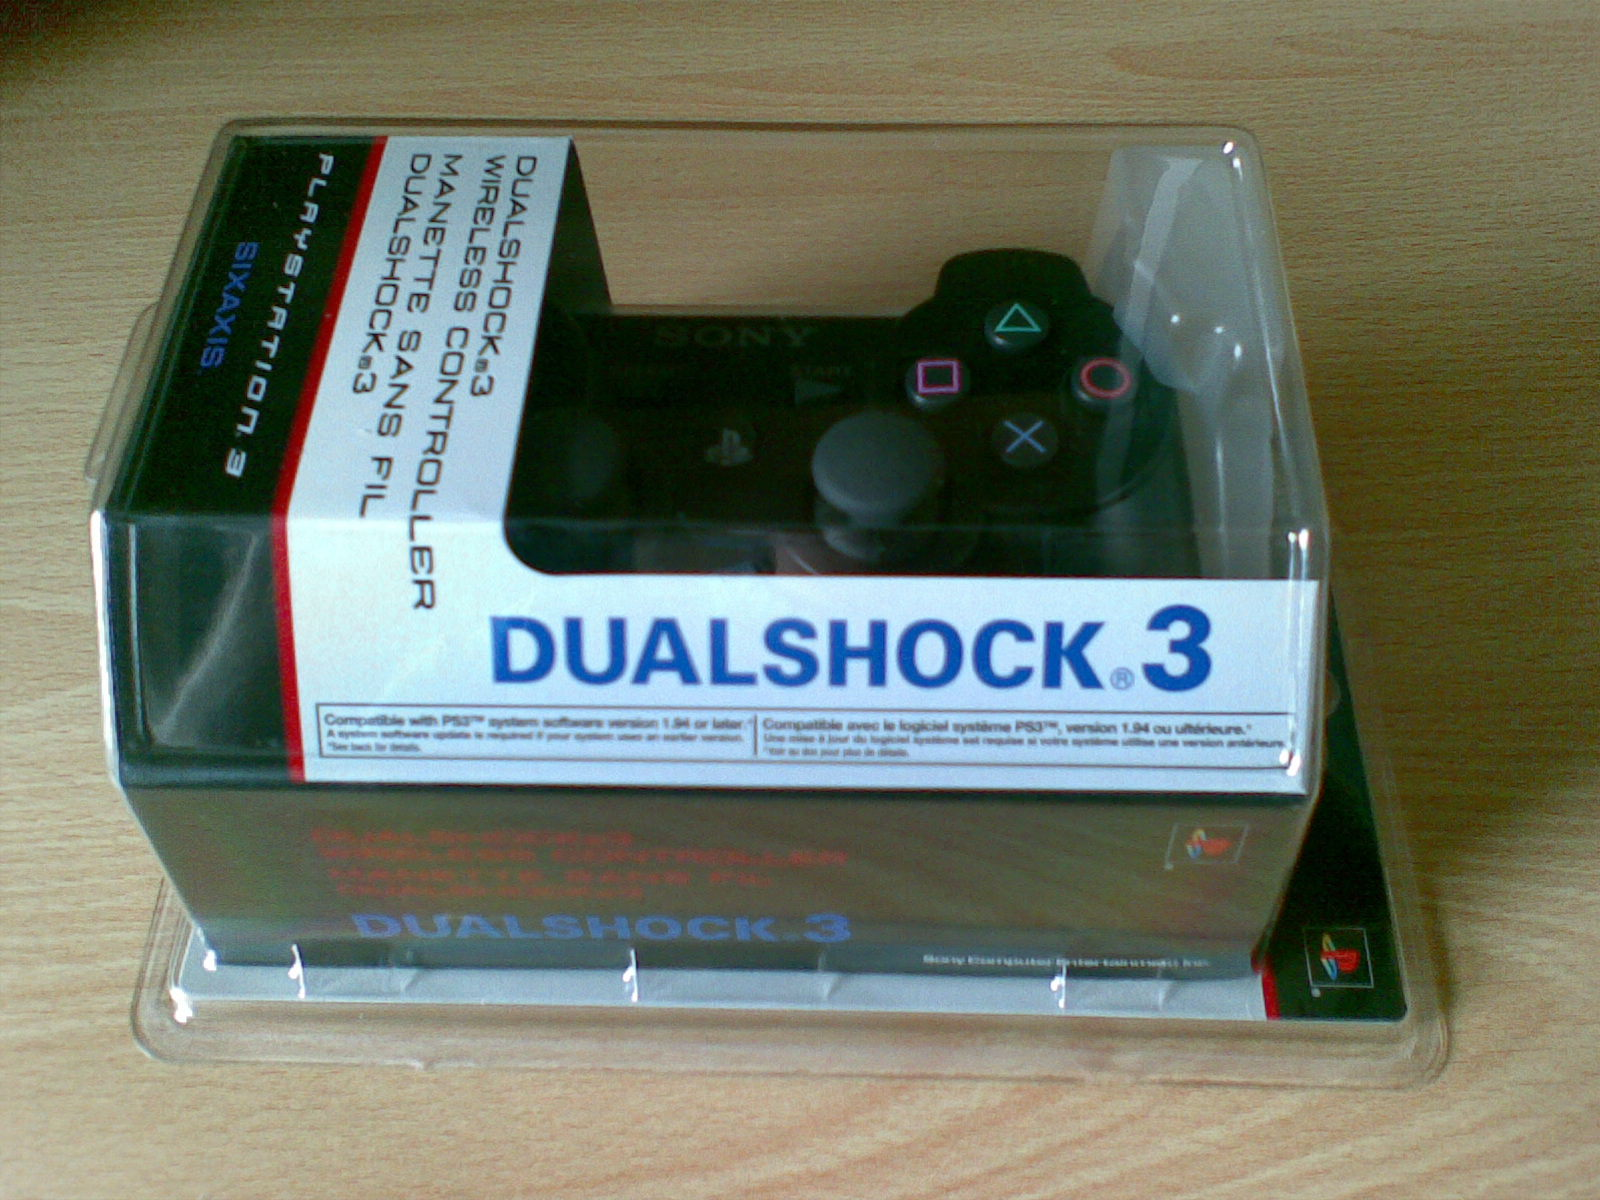 Scp toolkit fake dualshock 3 | How to Use a PS3 Controller on a PC